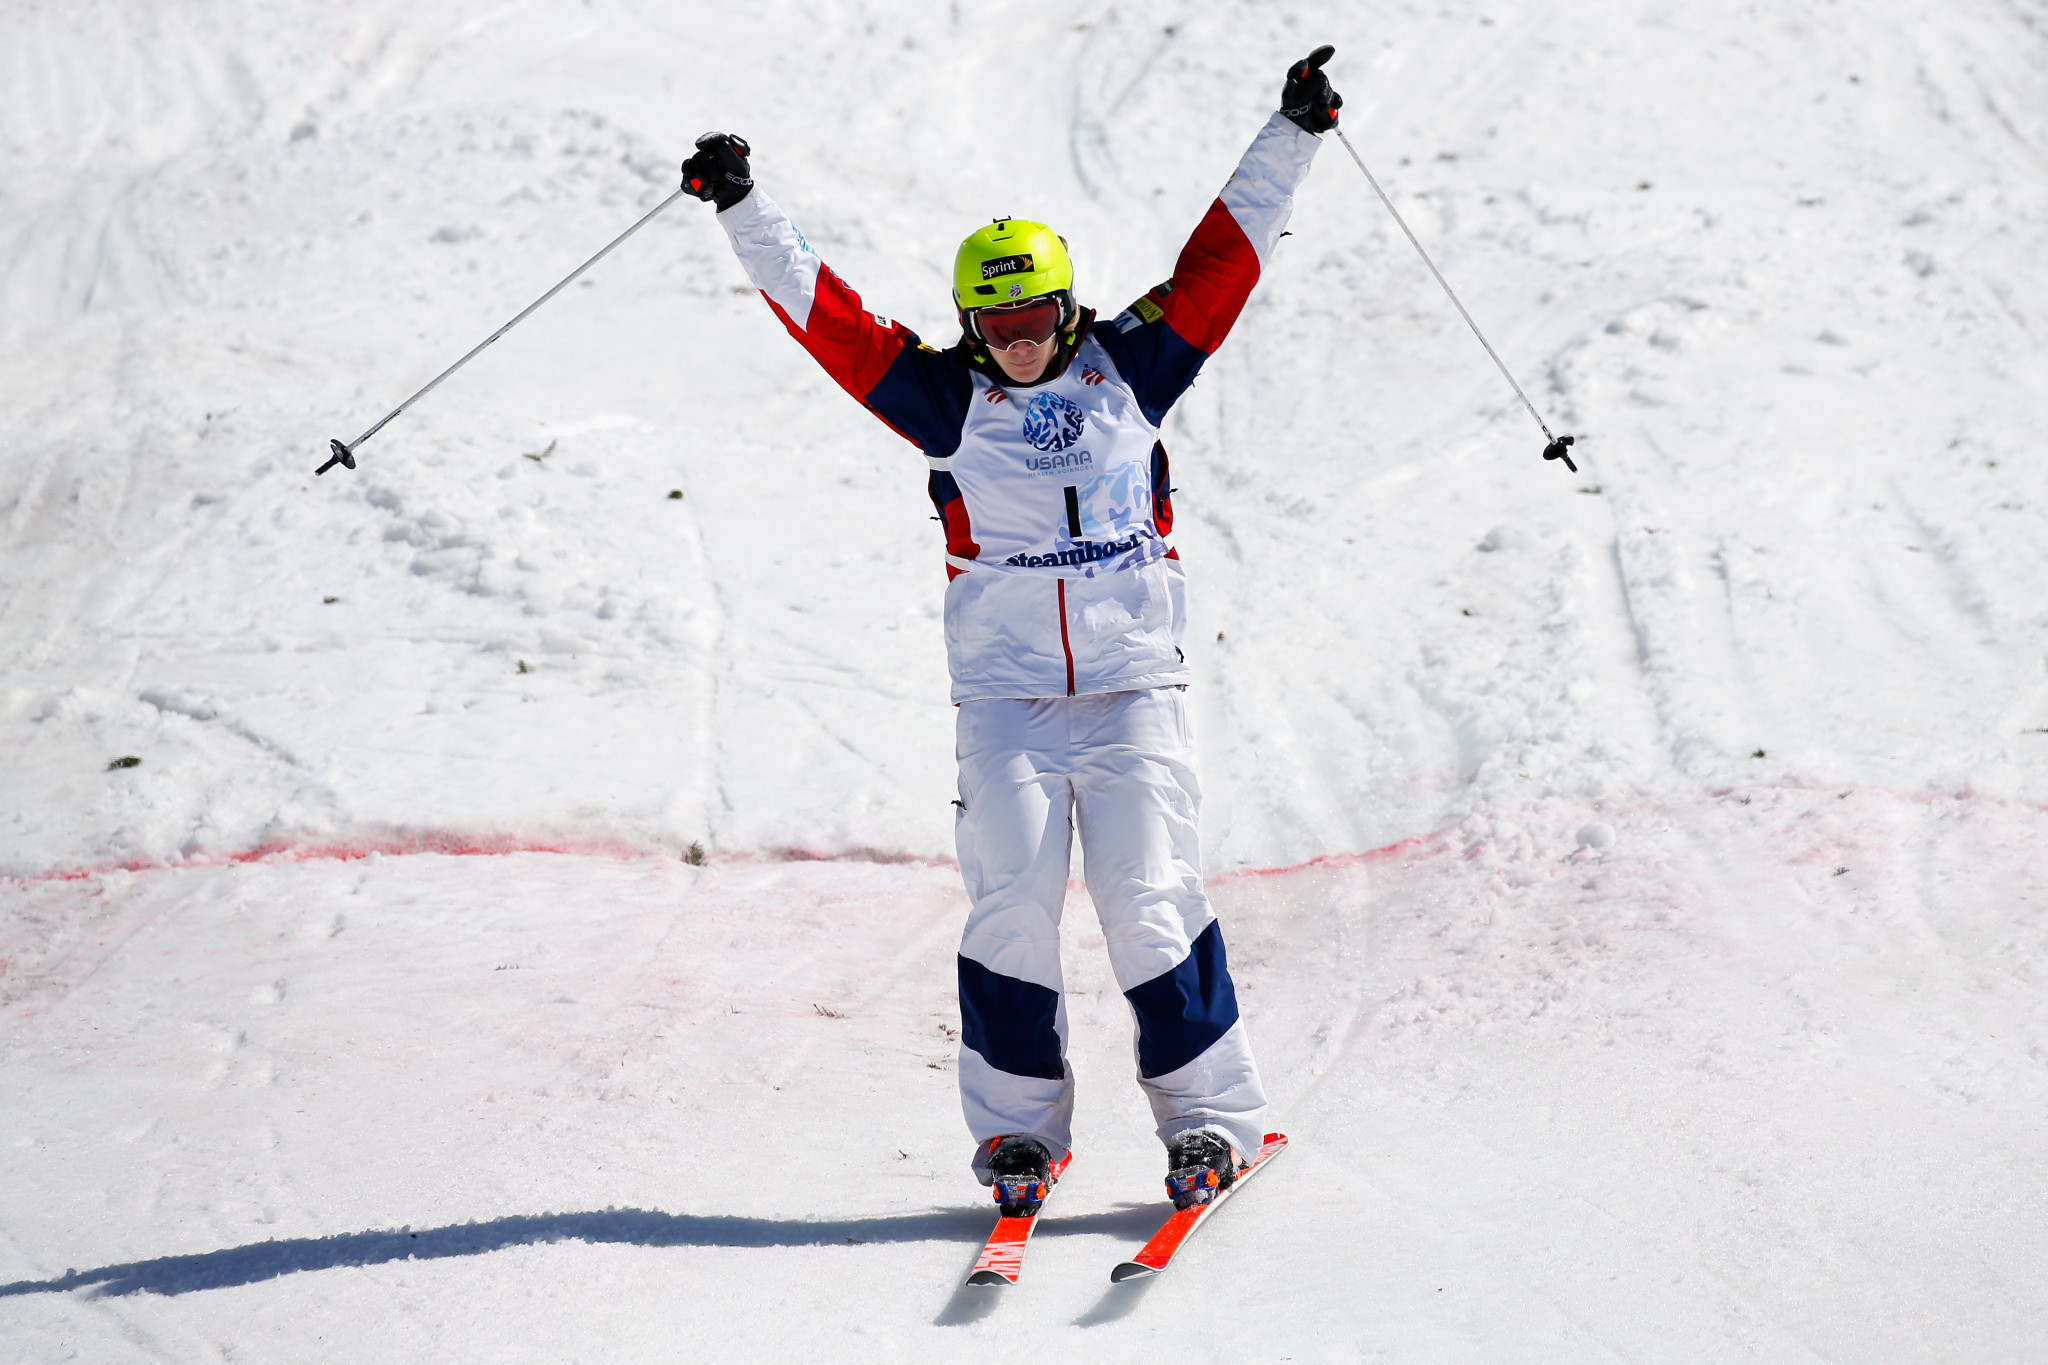 FIS announces newly-elected Athletes' Commission after voting at World Championships